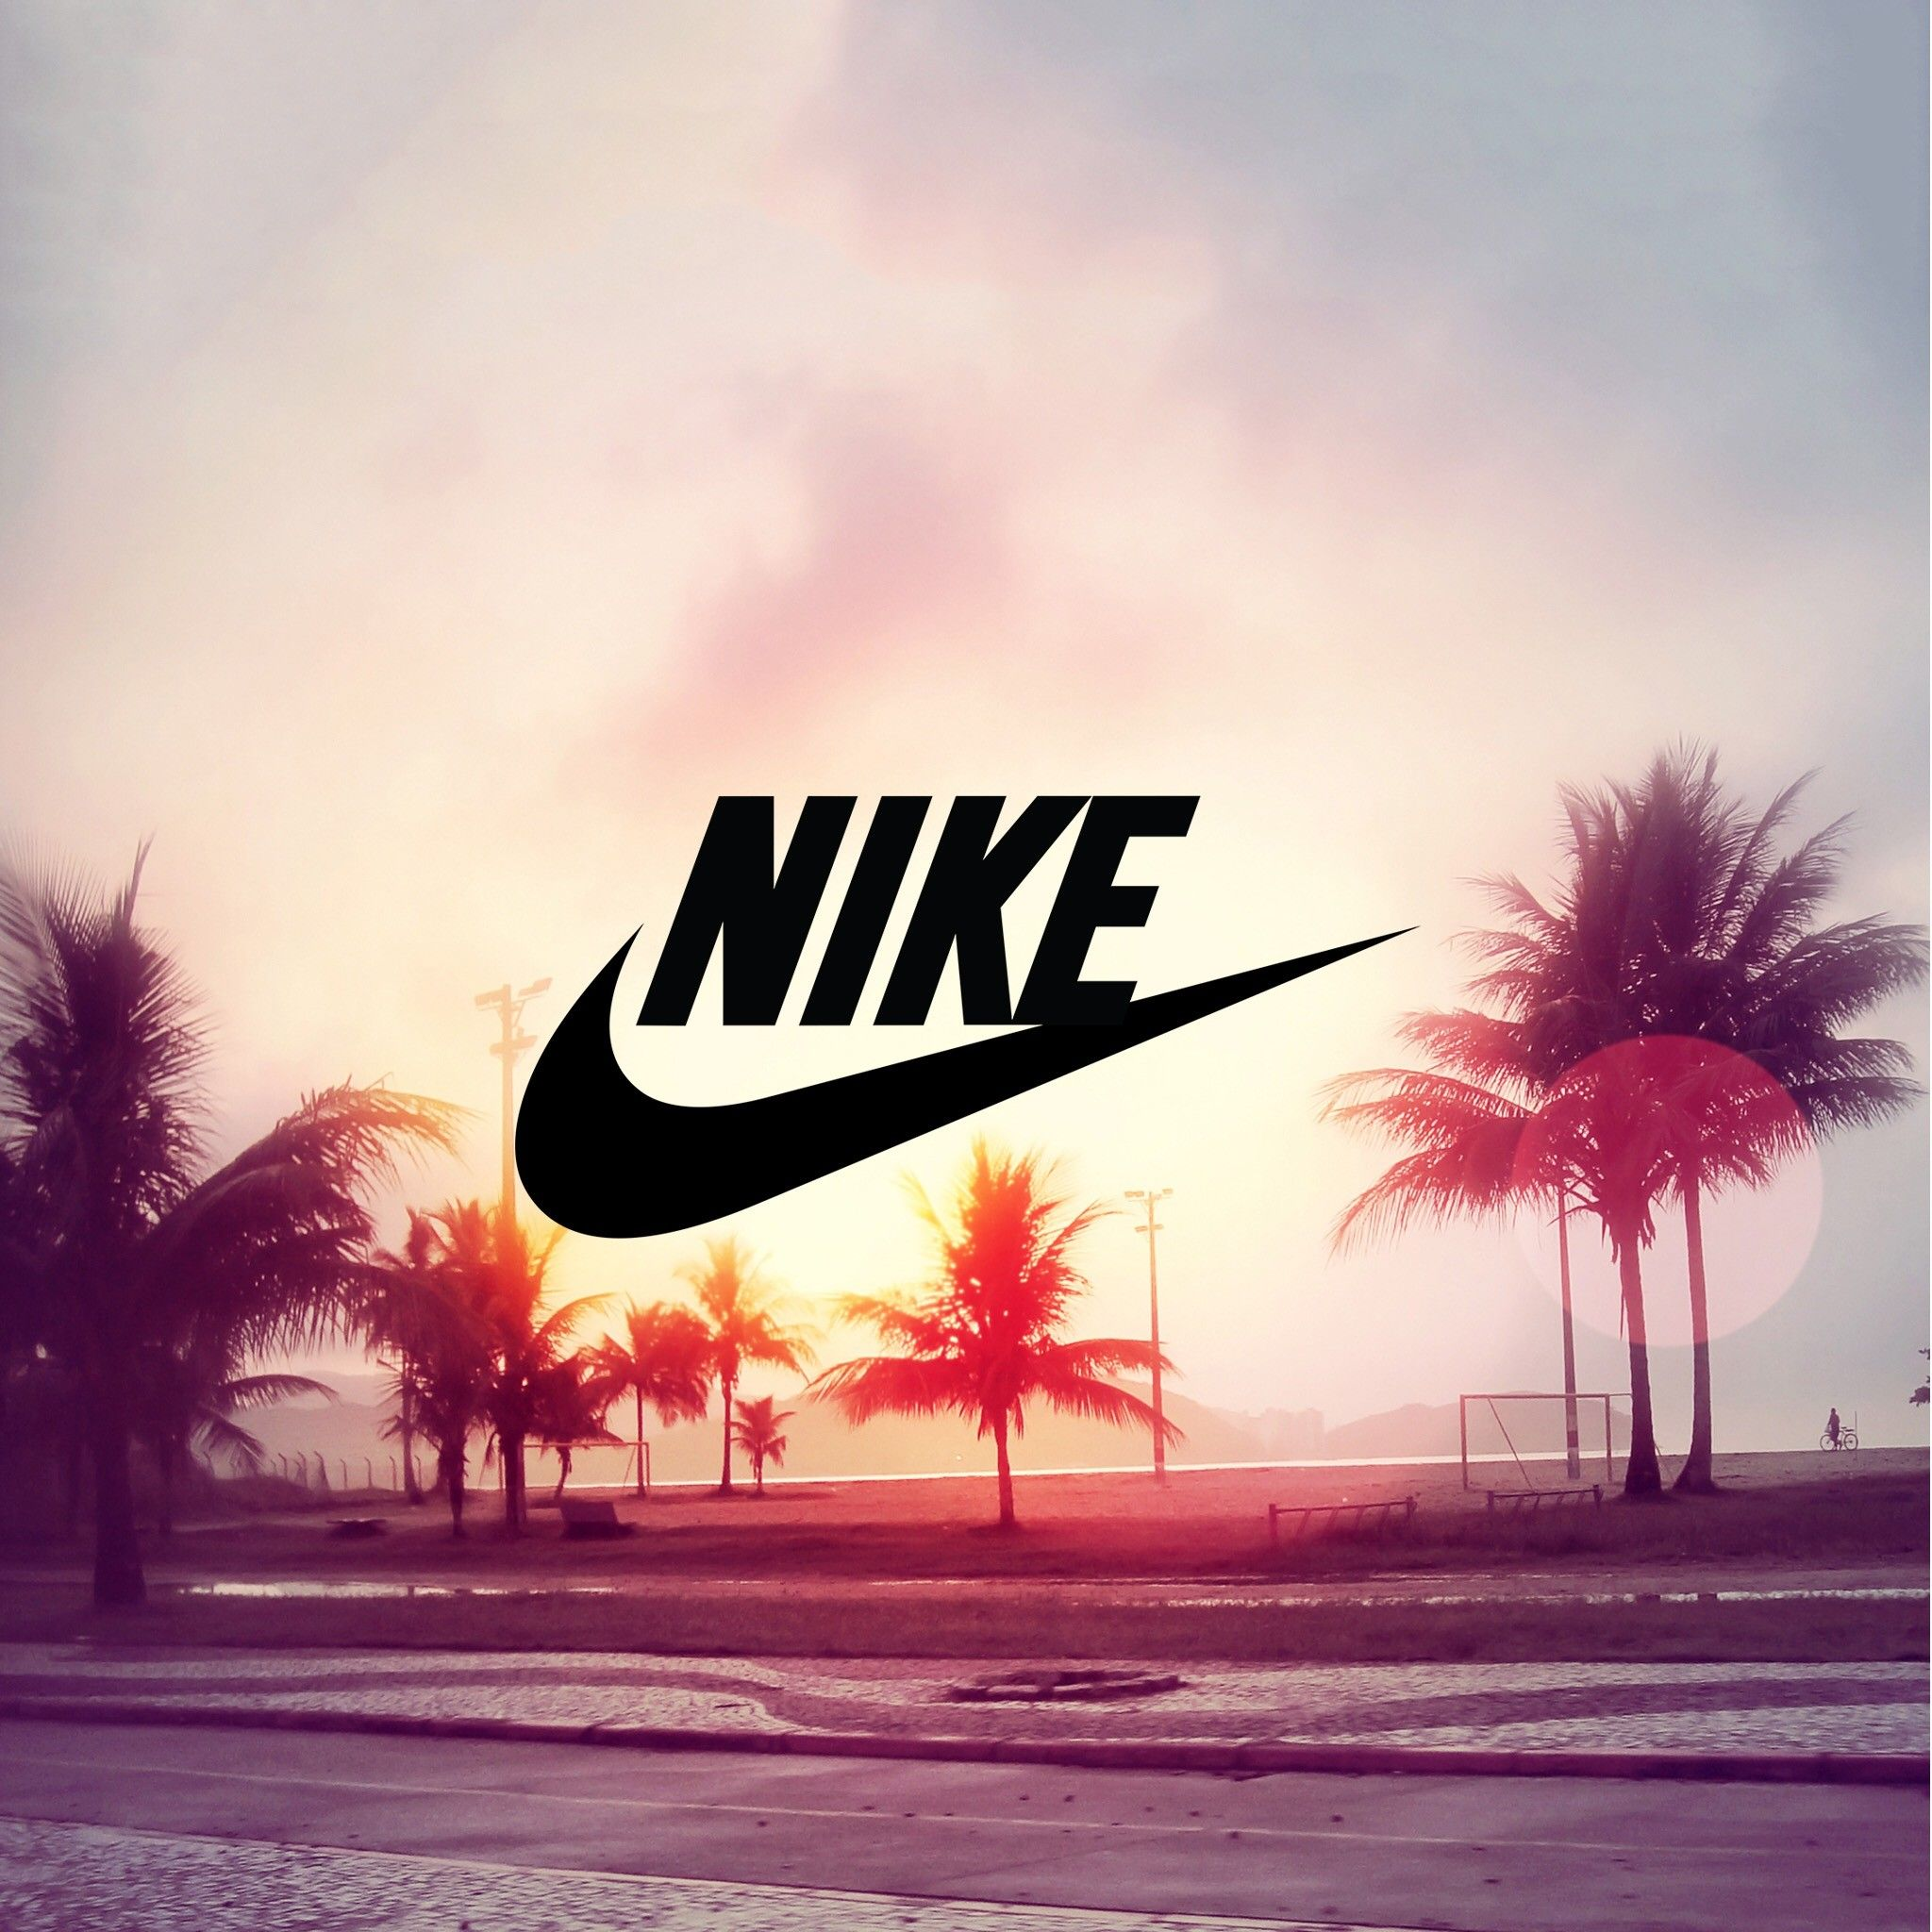 4k Nike Wallpapers Top Free 4k Nike Backgrounds Wallpaperaccess